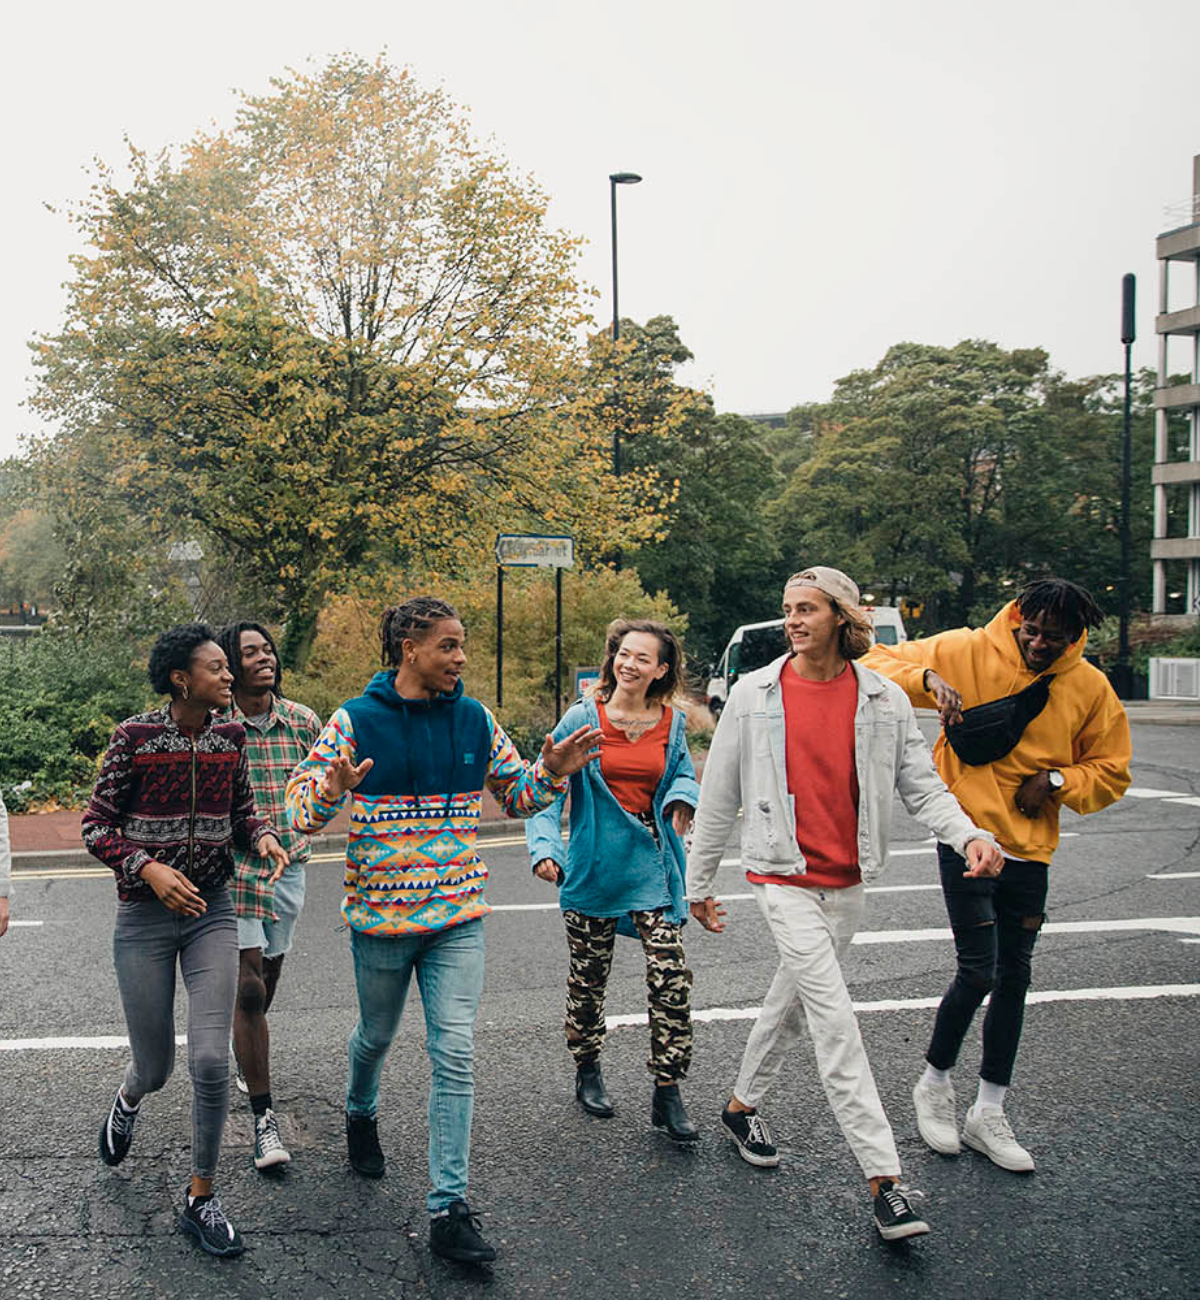 Group of happy and diverse young people walking on the street